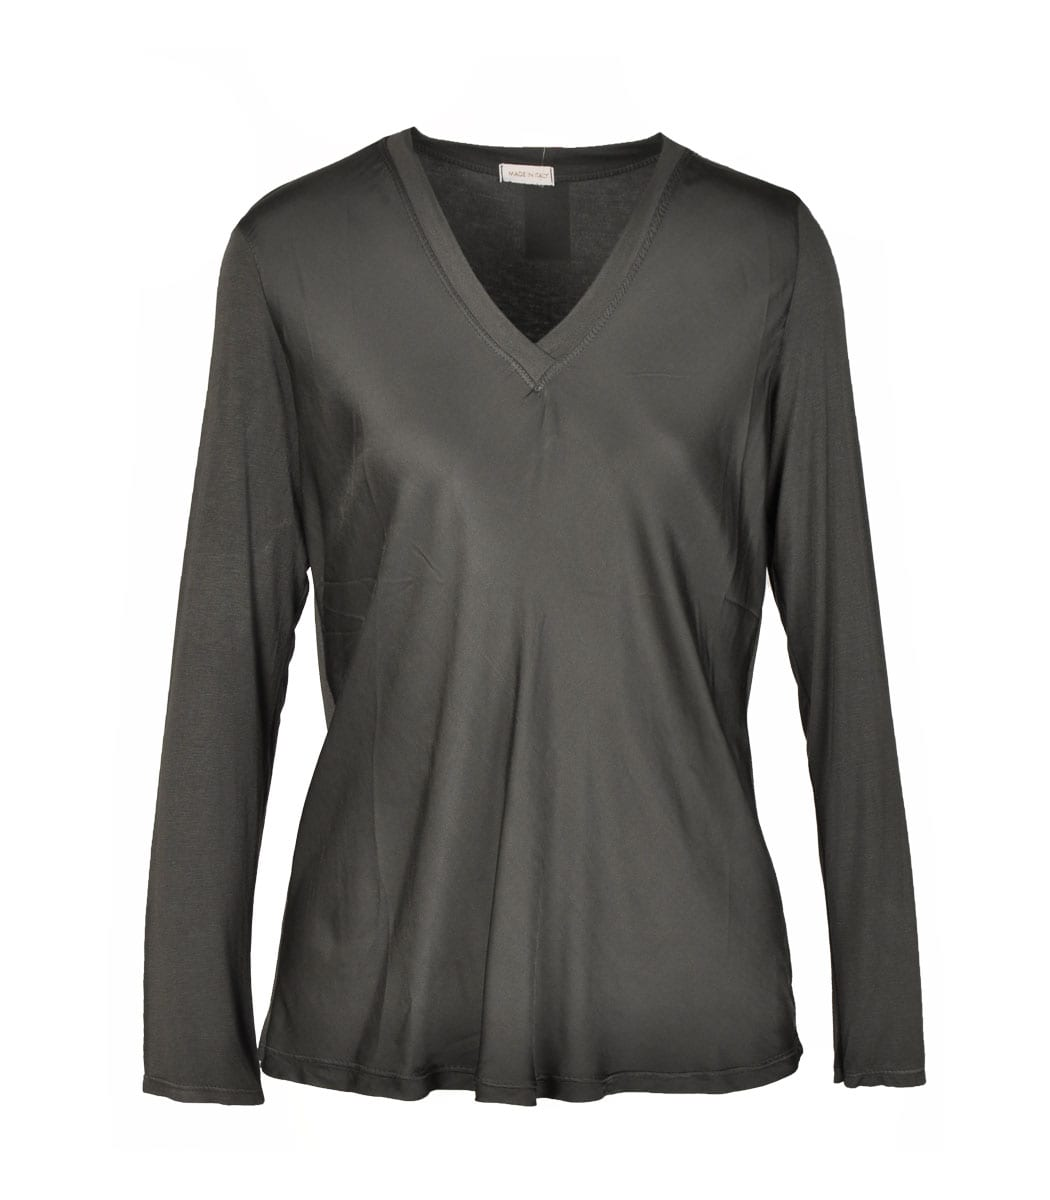 Satin front long sleeve v-neck top